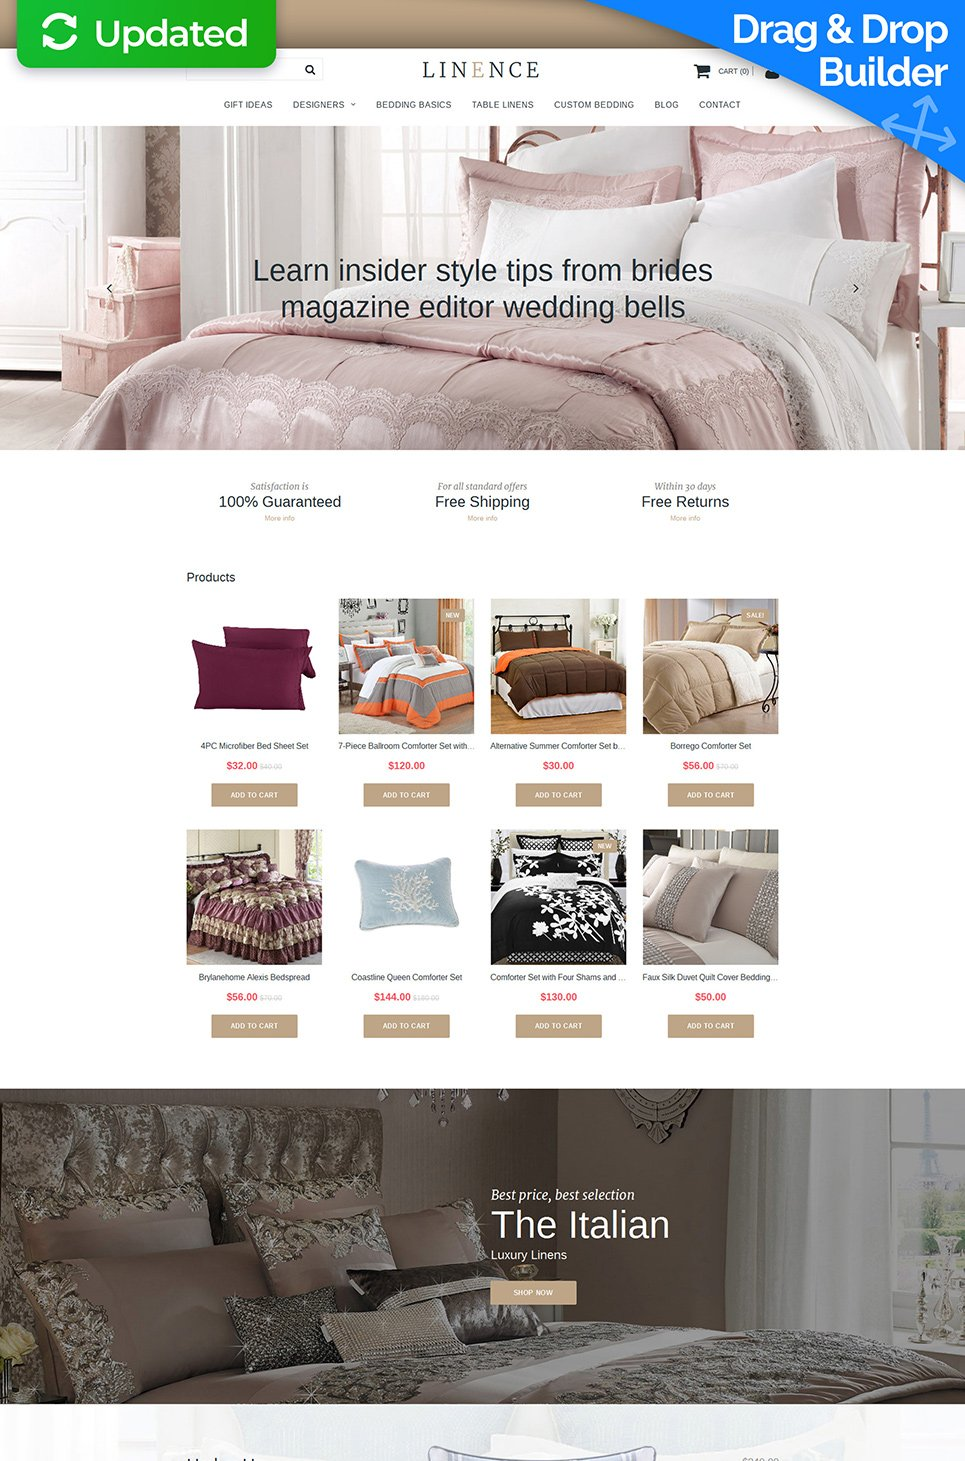 Linence Ecommerce Website Template - image